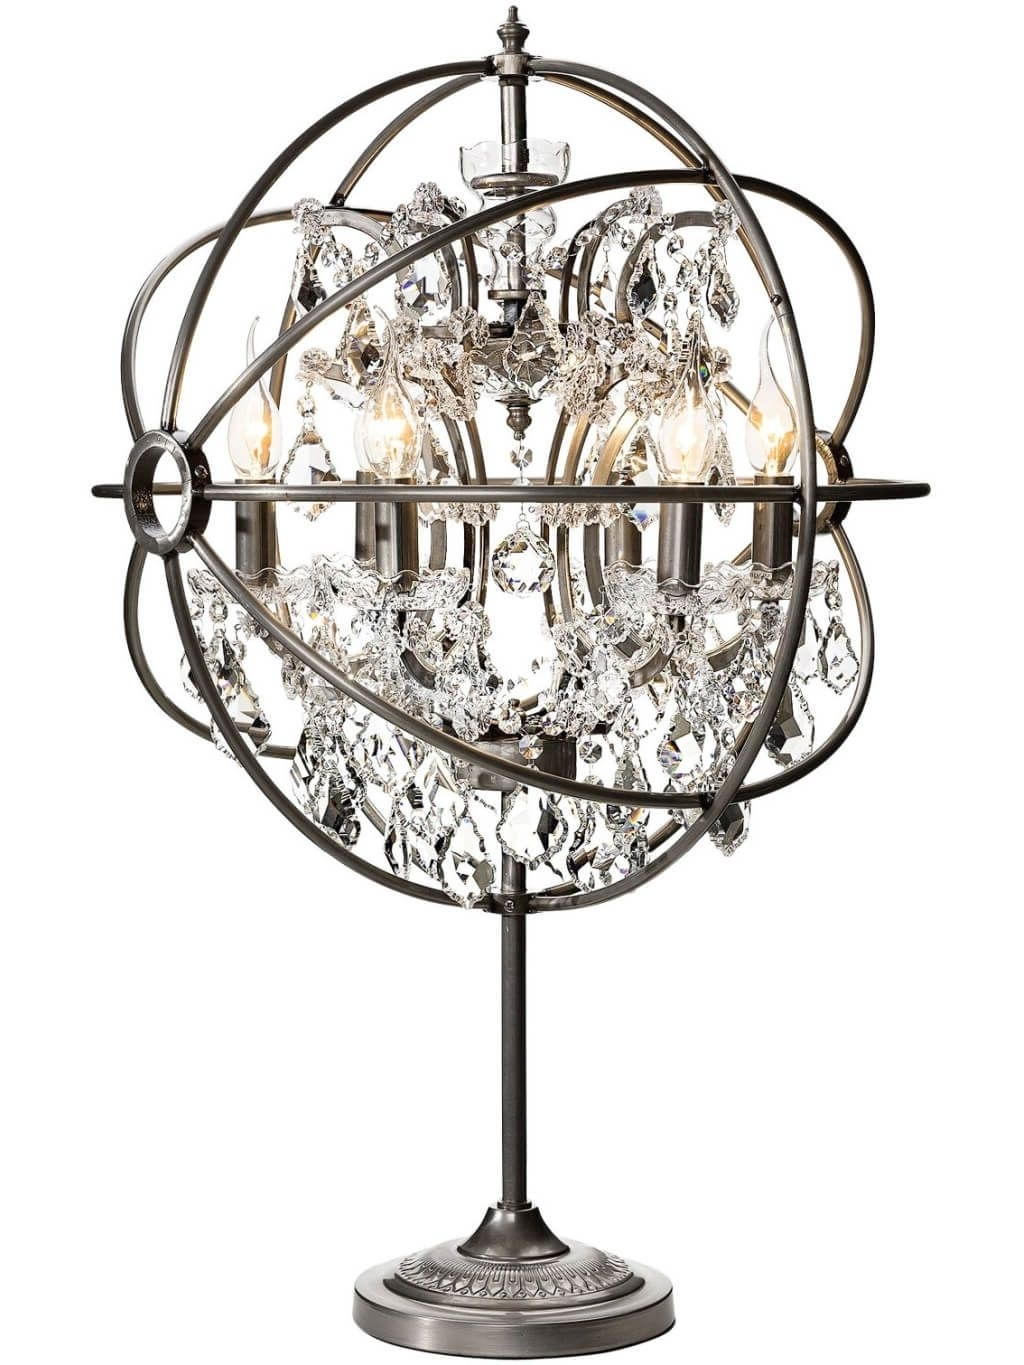 Famous Small Chandelier Table Lamps Regarding Lighting: Enticing Small Chandelier Table Lamp With Aluminum Base (View 4 of 15)